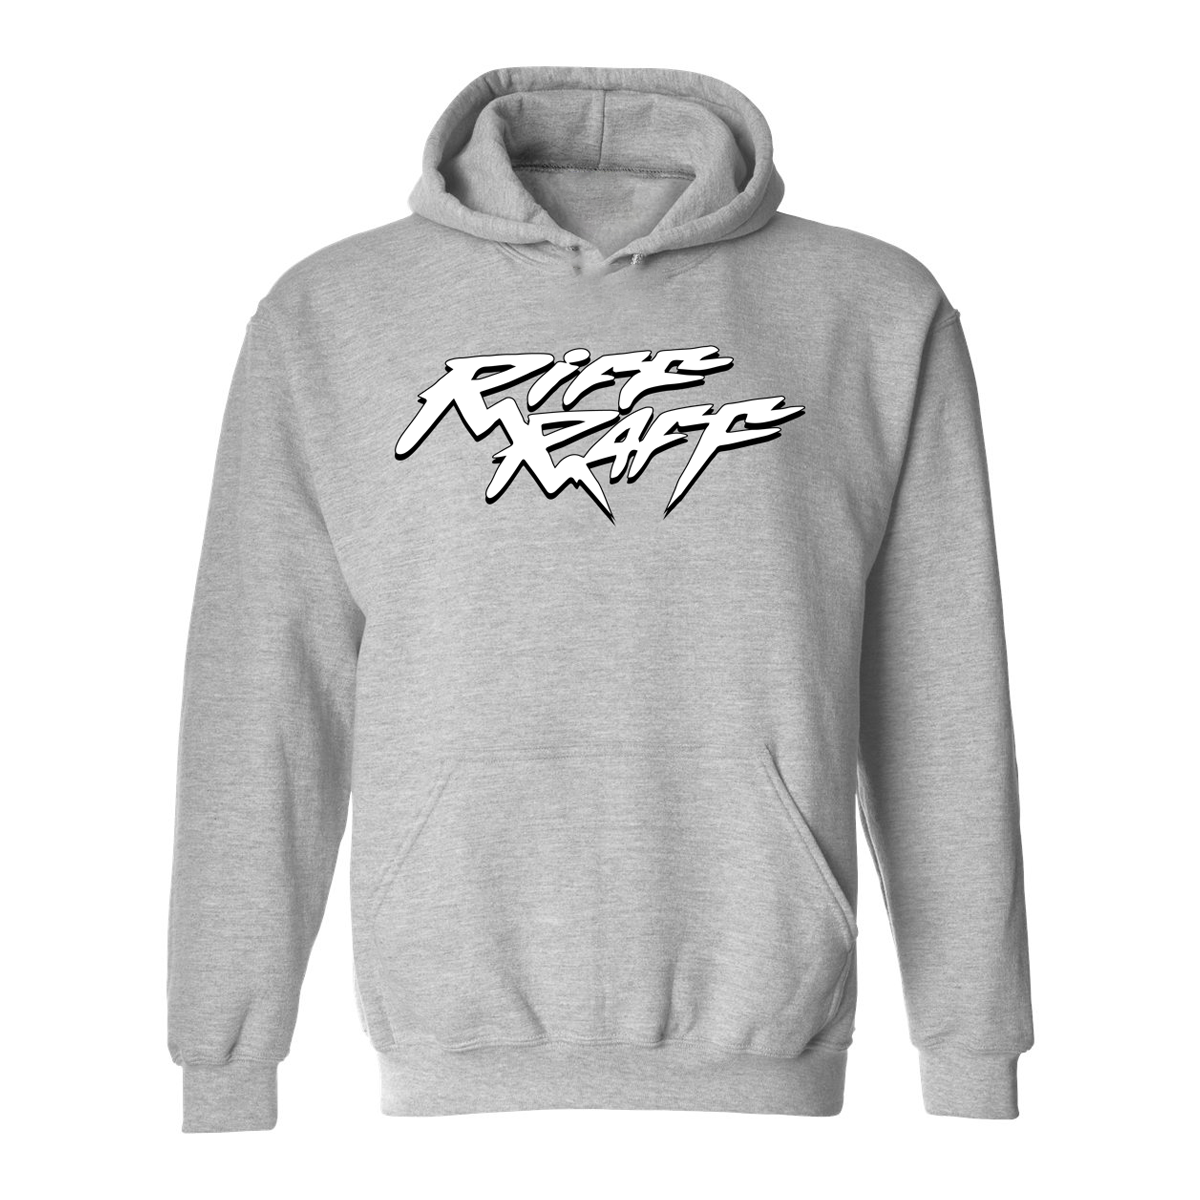 FRESH RiFF OF BEL-AiR HOODIE (GREY - WHiTE LOGO)